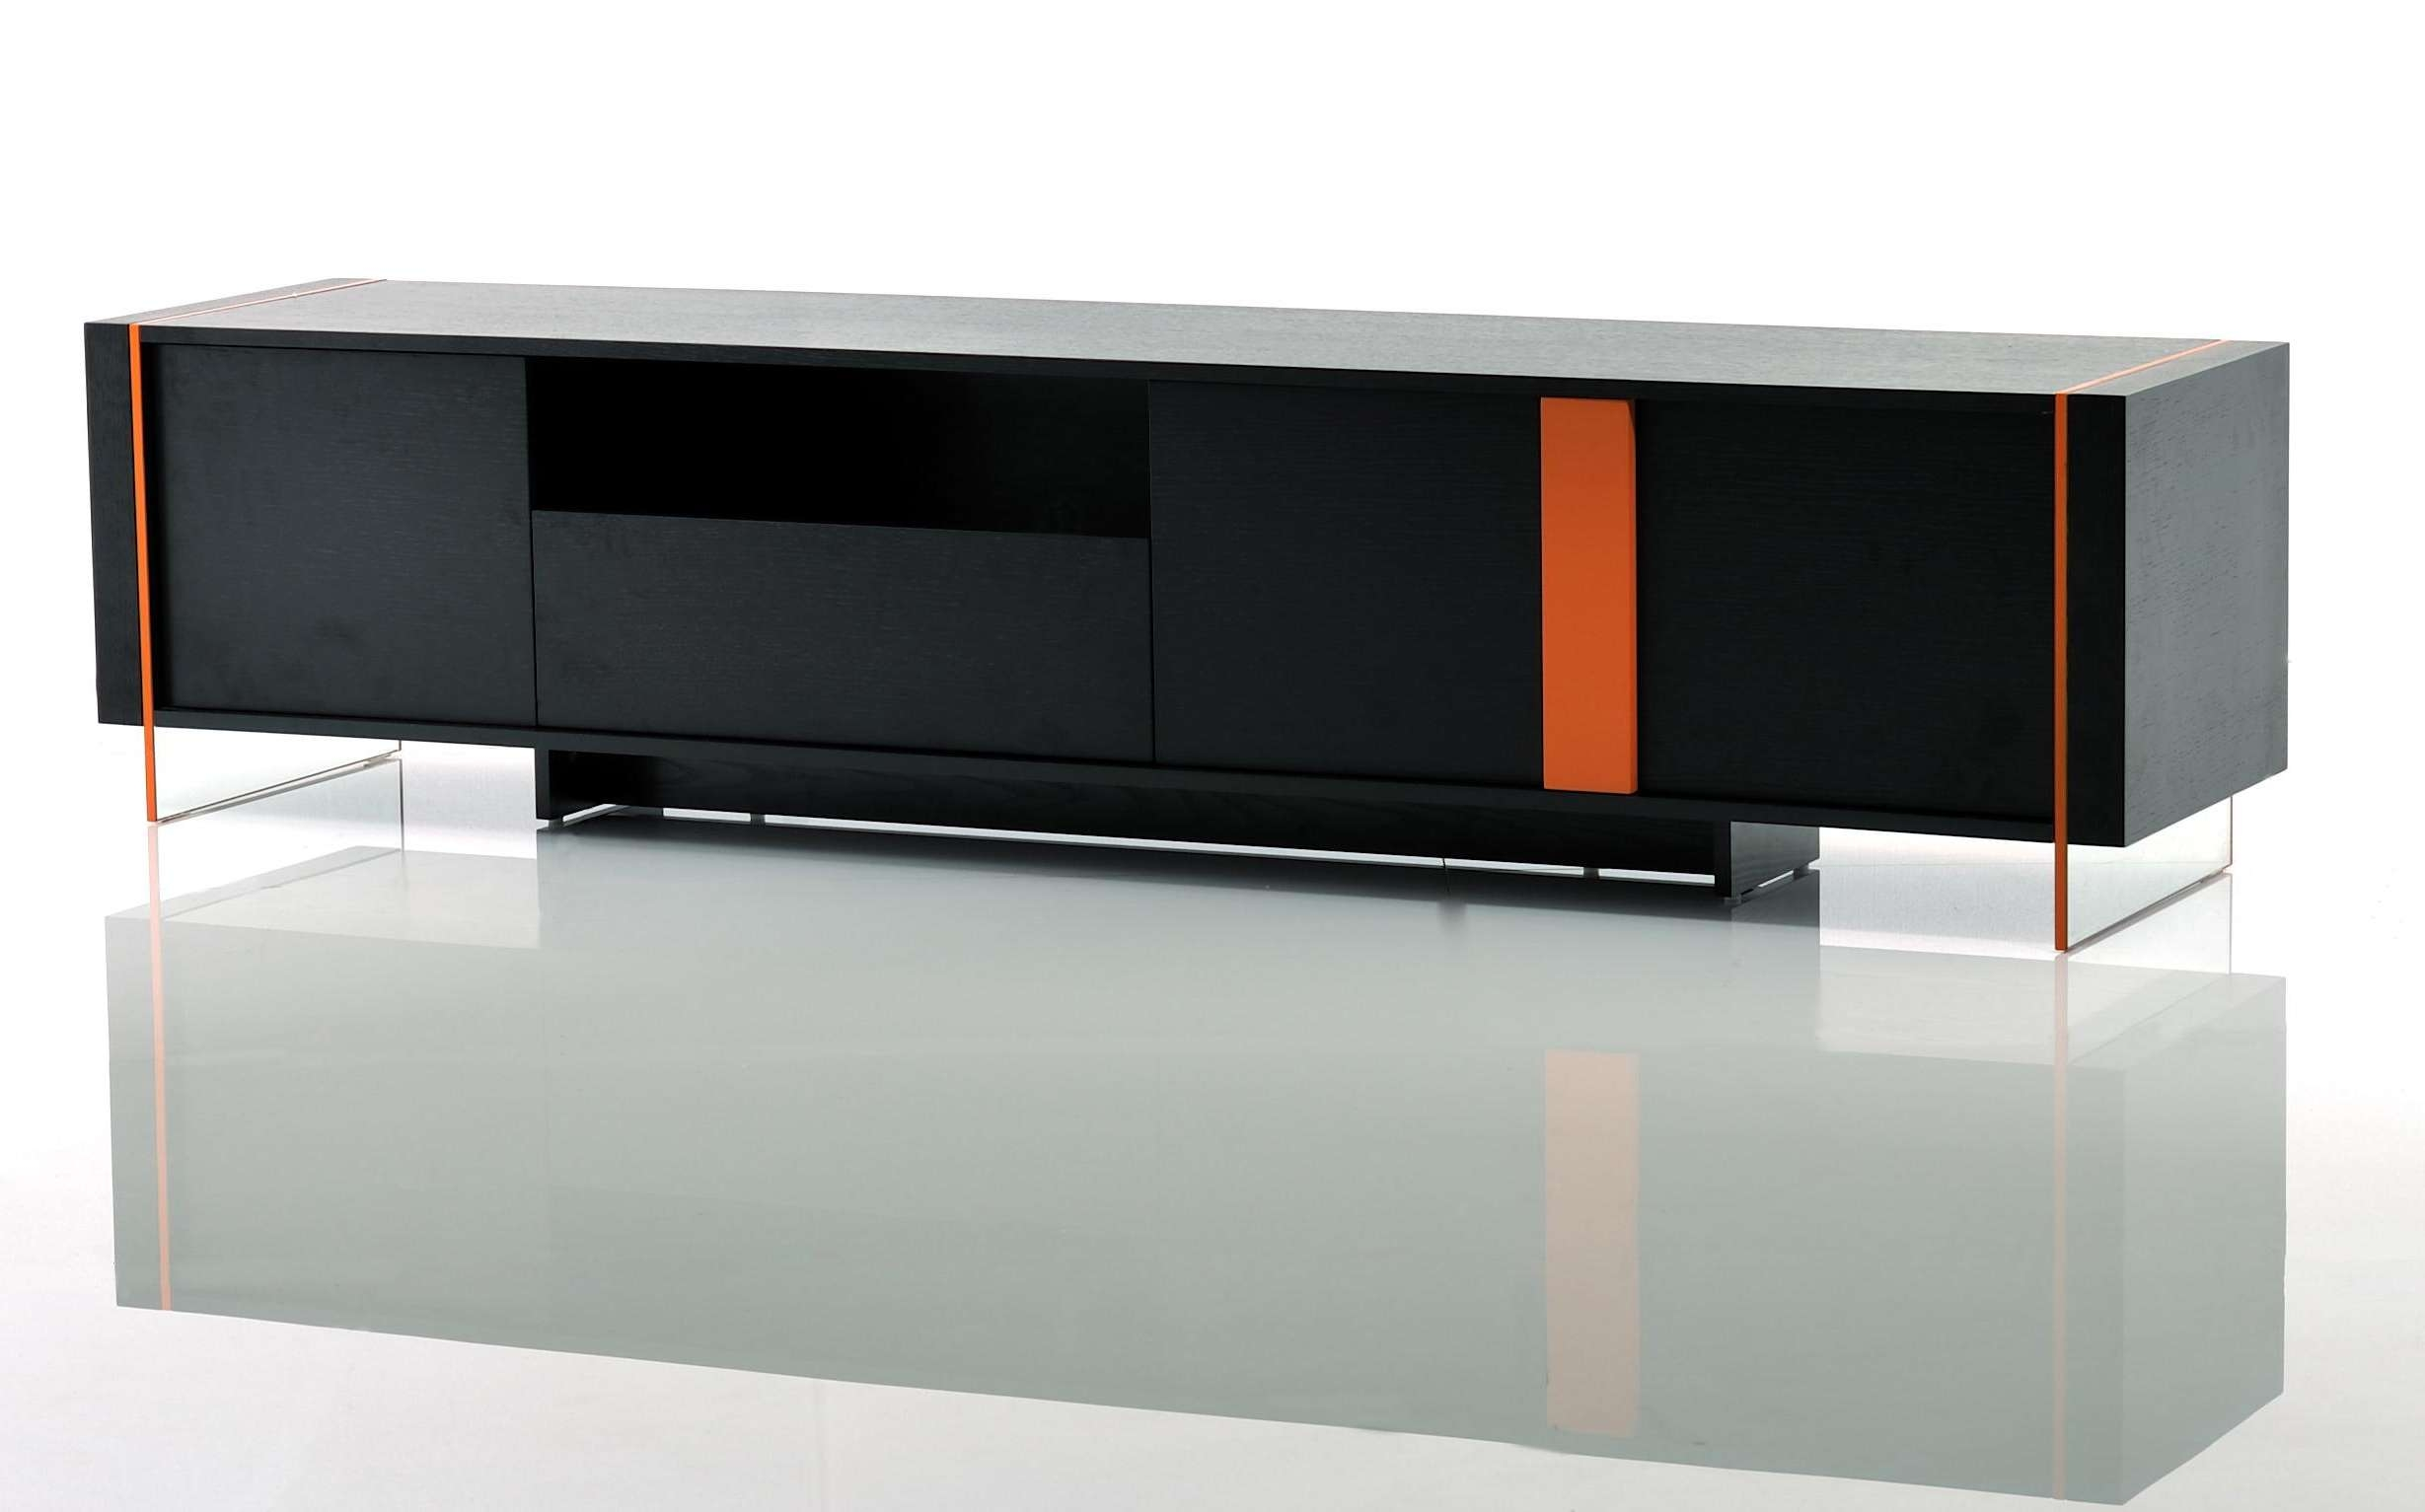 Rectangle Modern Flat Tv Stand Made Of Solid Wood In Black Throughout Rectangular Tv Stands (View 9 of 15)